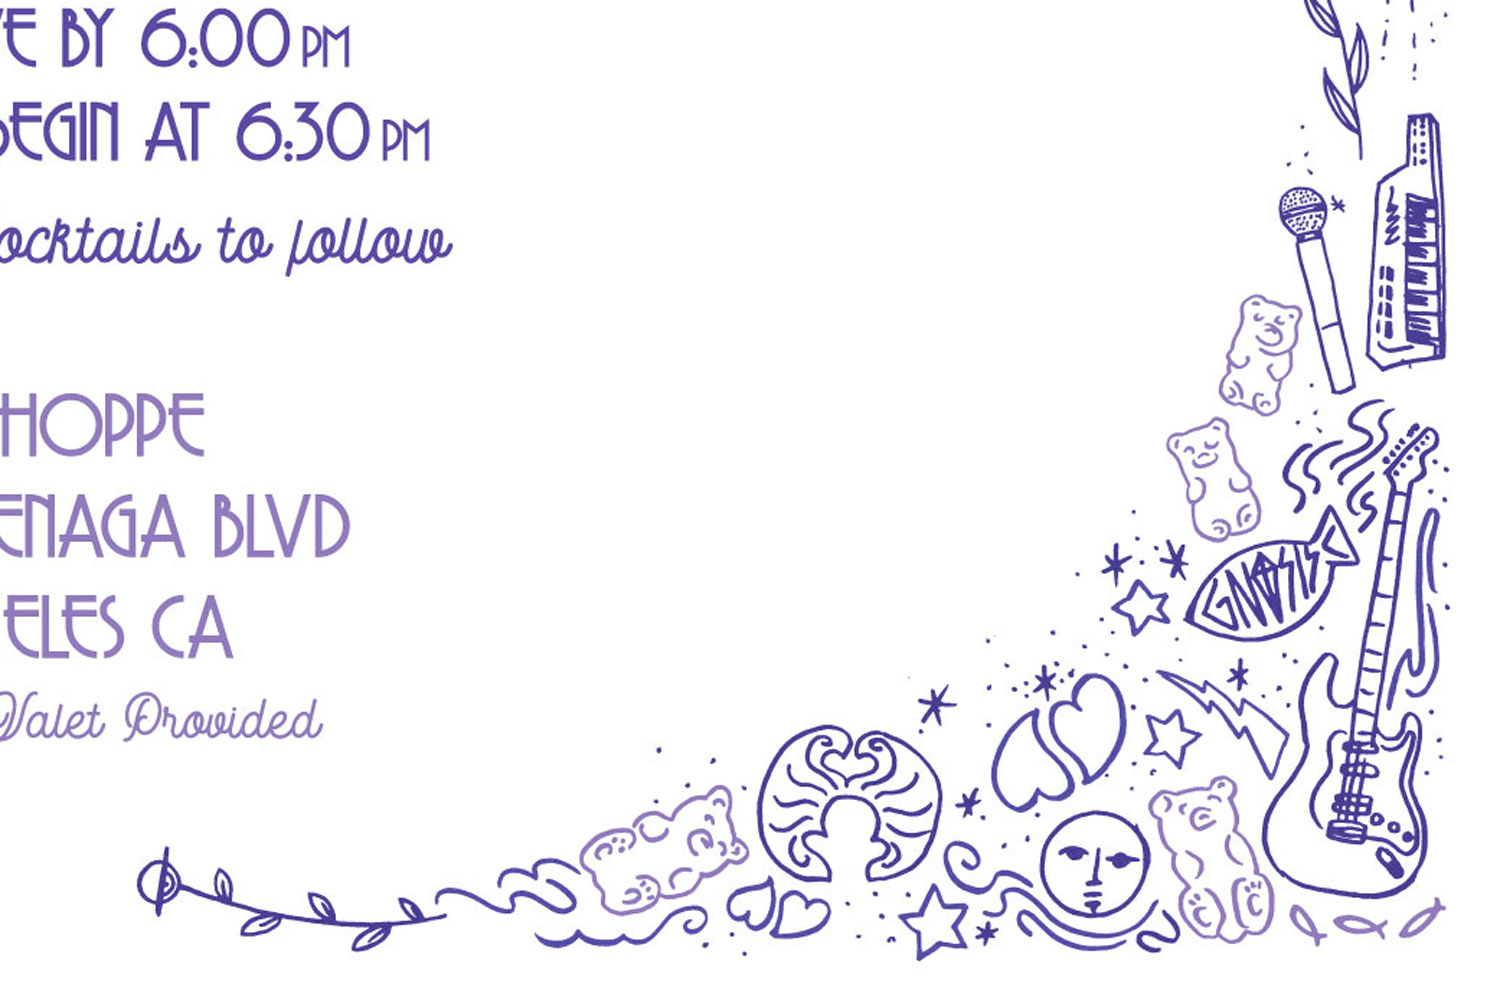 Hedwig_illustrated_custom_invitations_gay_wedding_Erin_Ellis_detail2.jpg